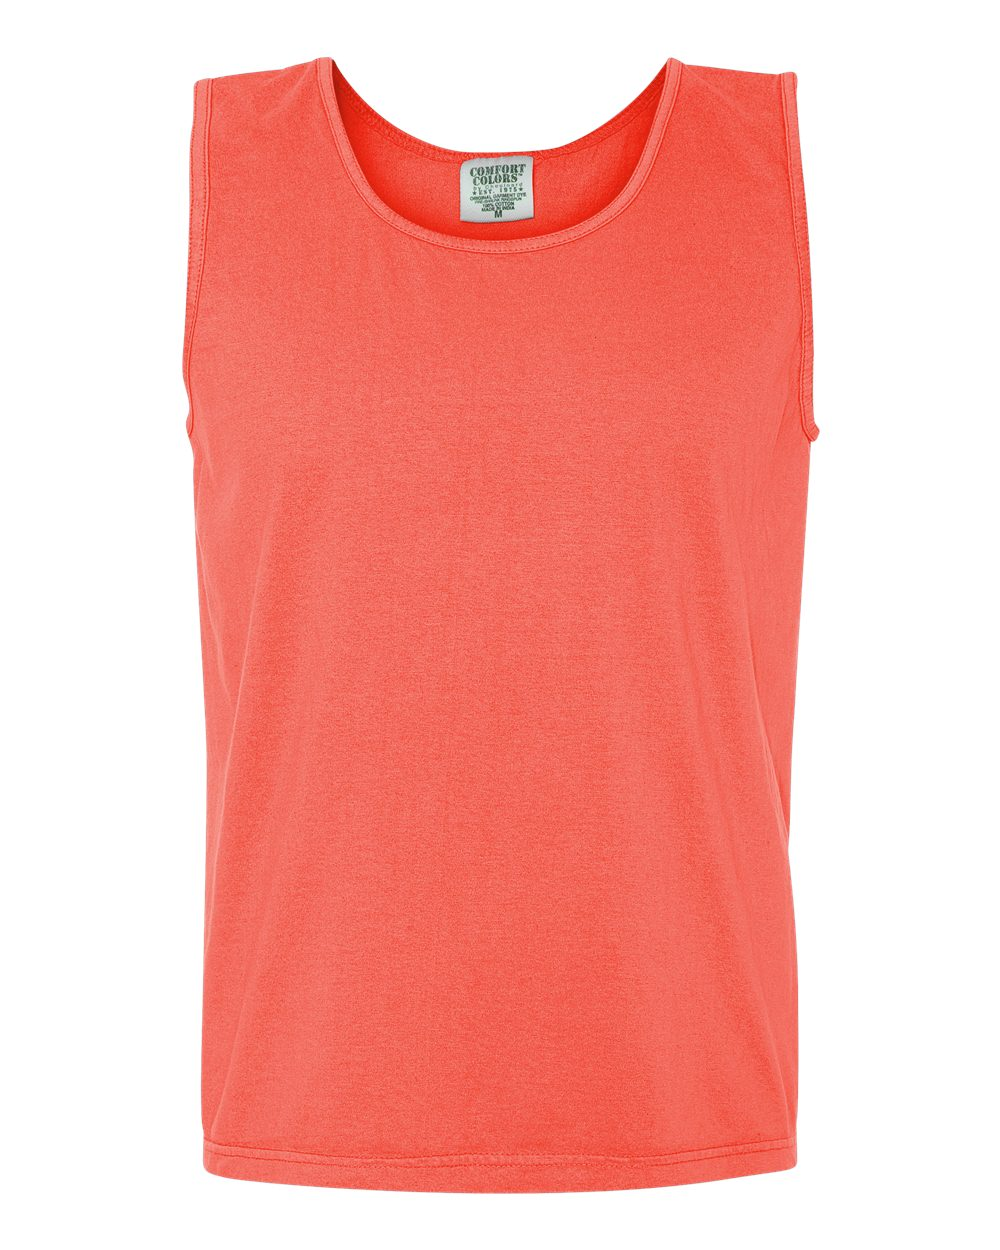 more ladies comforter comfort tanks colors us department